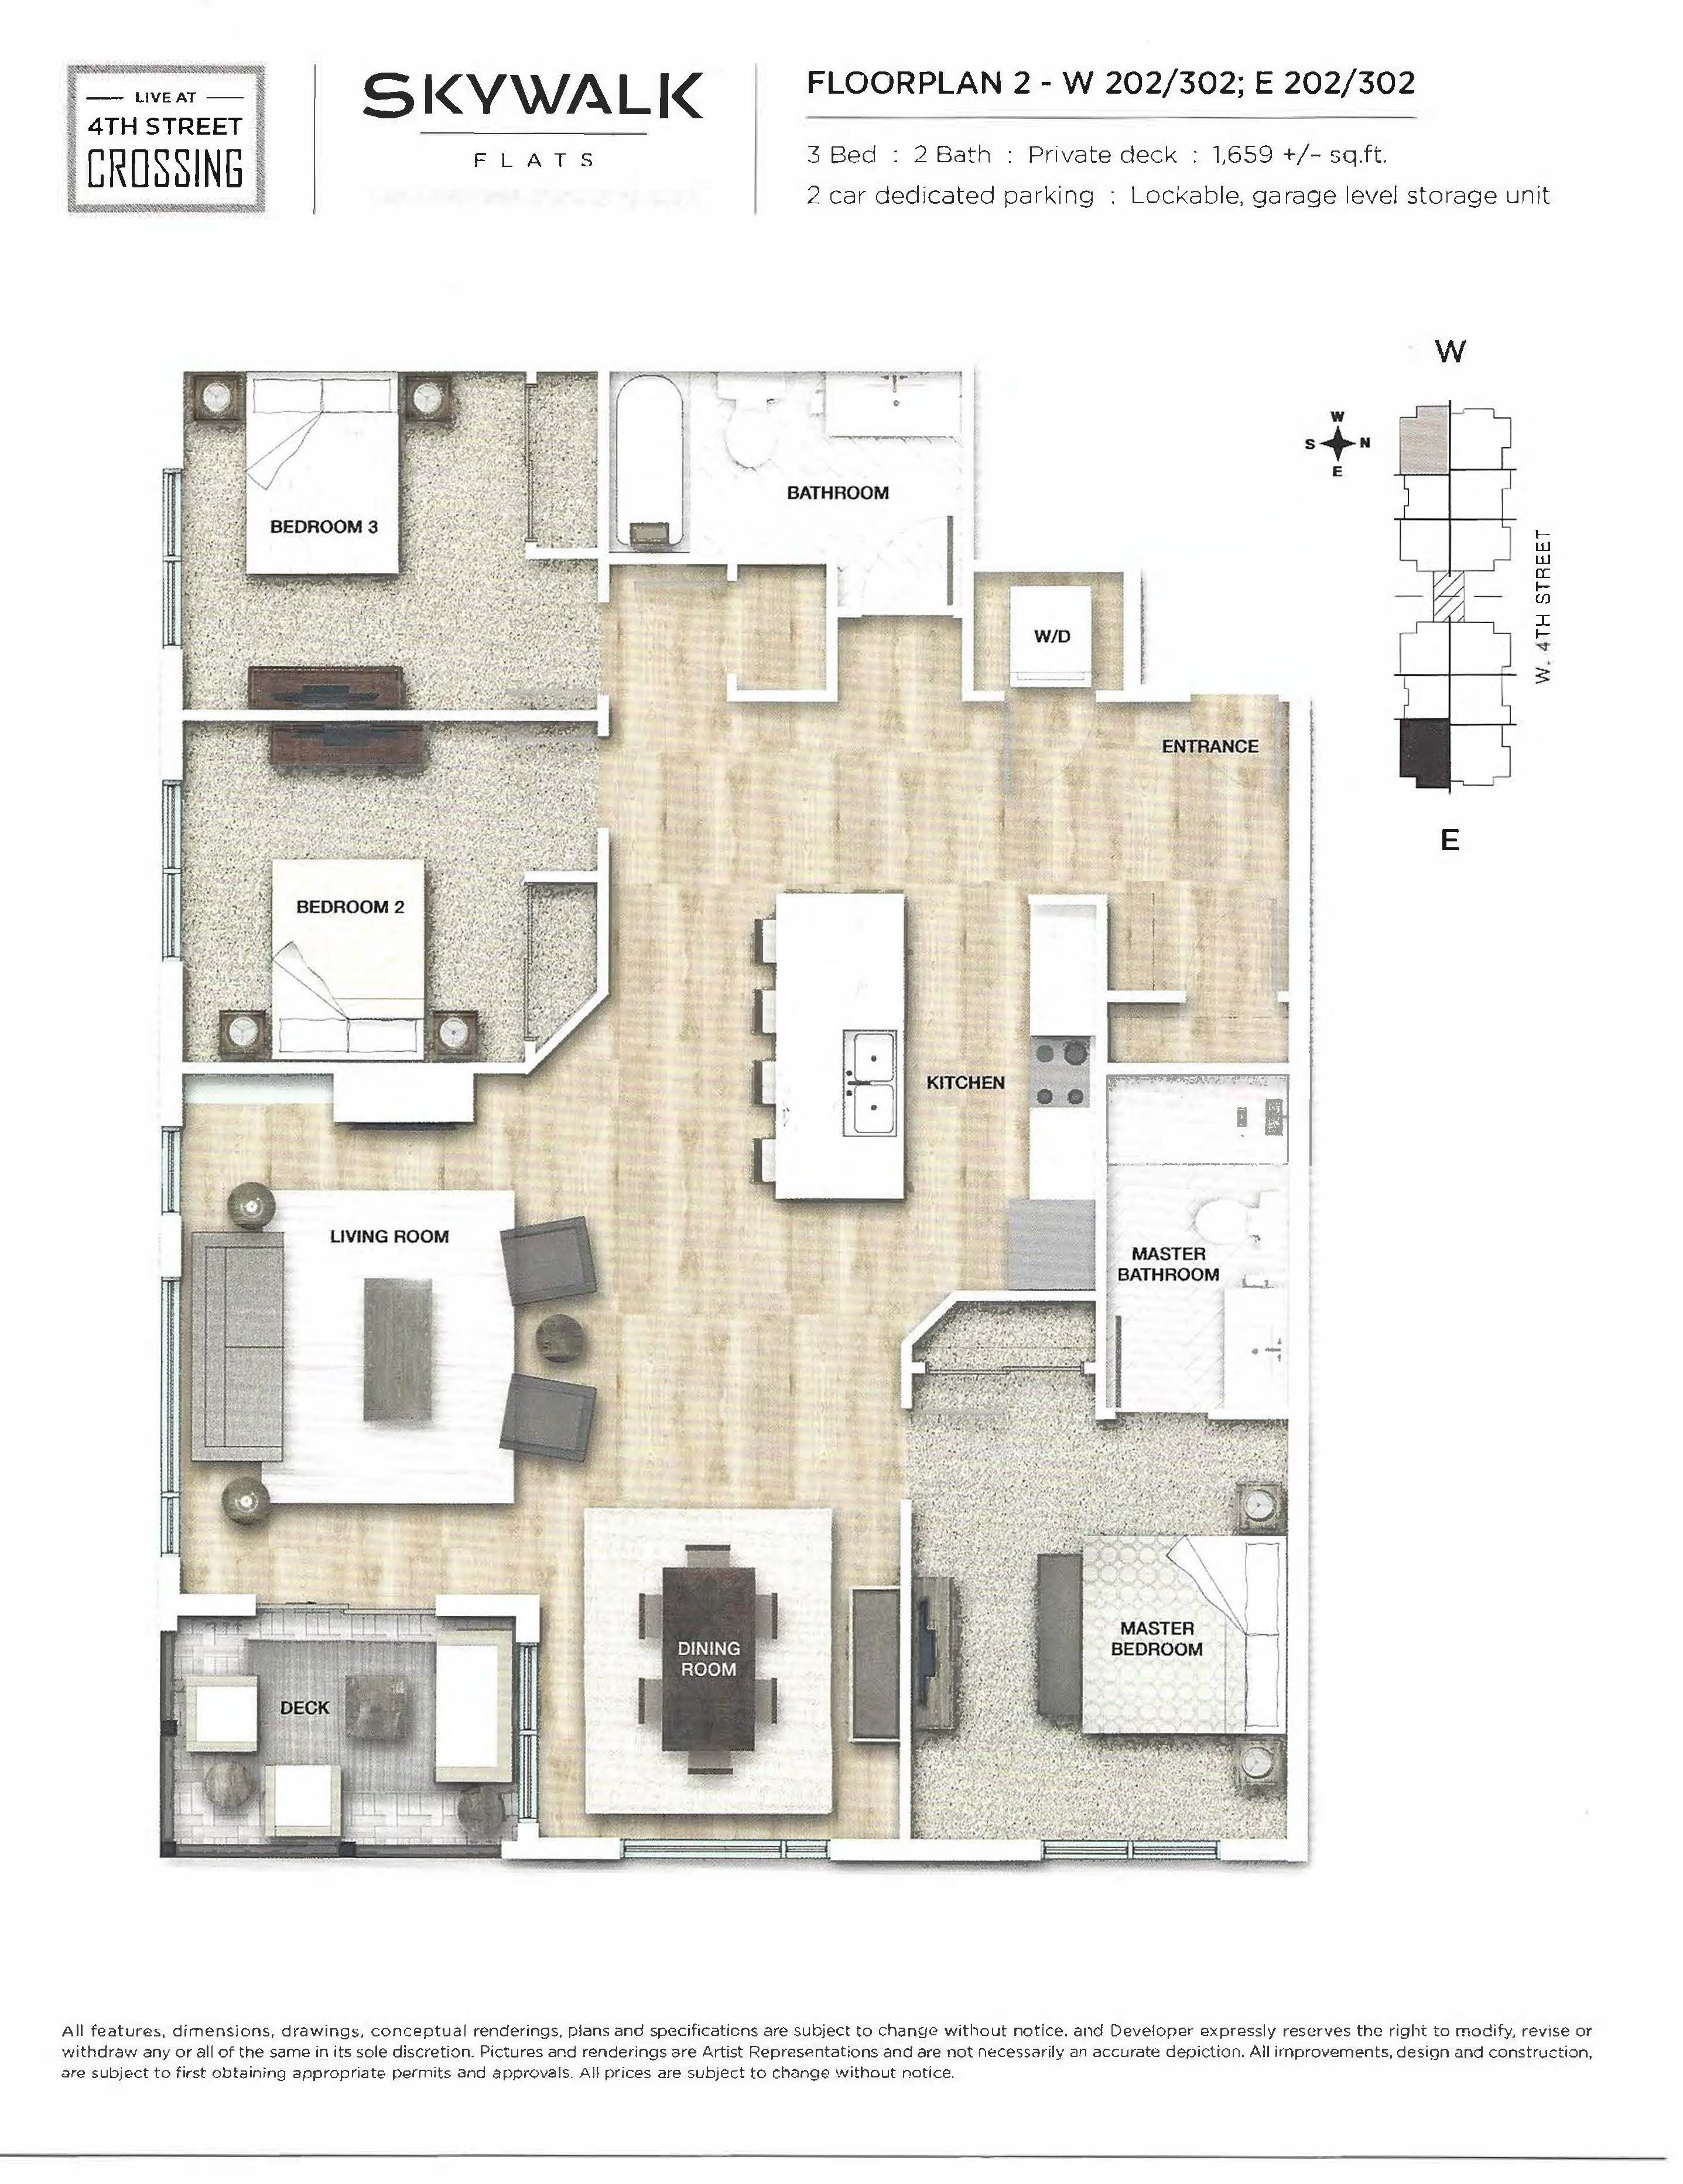 Fourth Street Crossing - Skywalk Flats - Floorplan 2